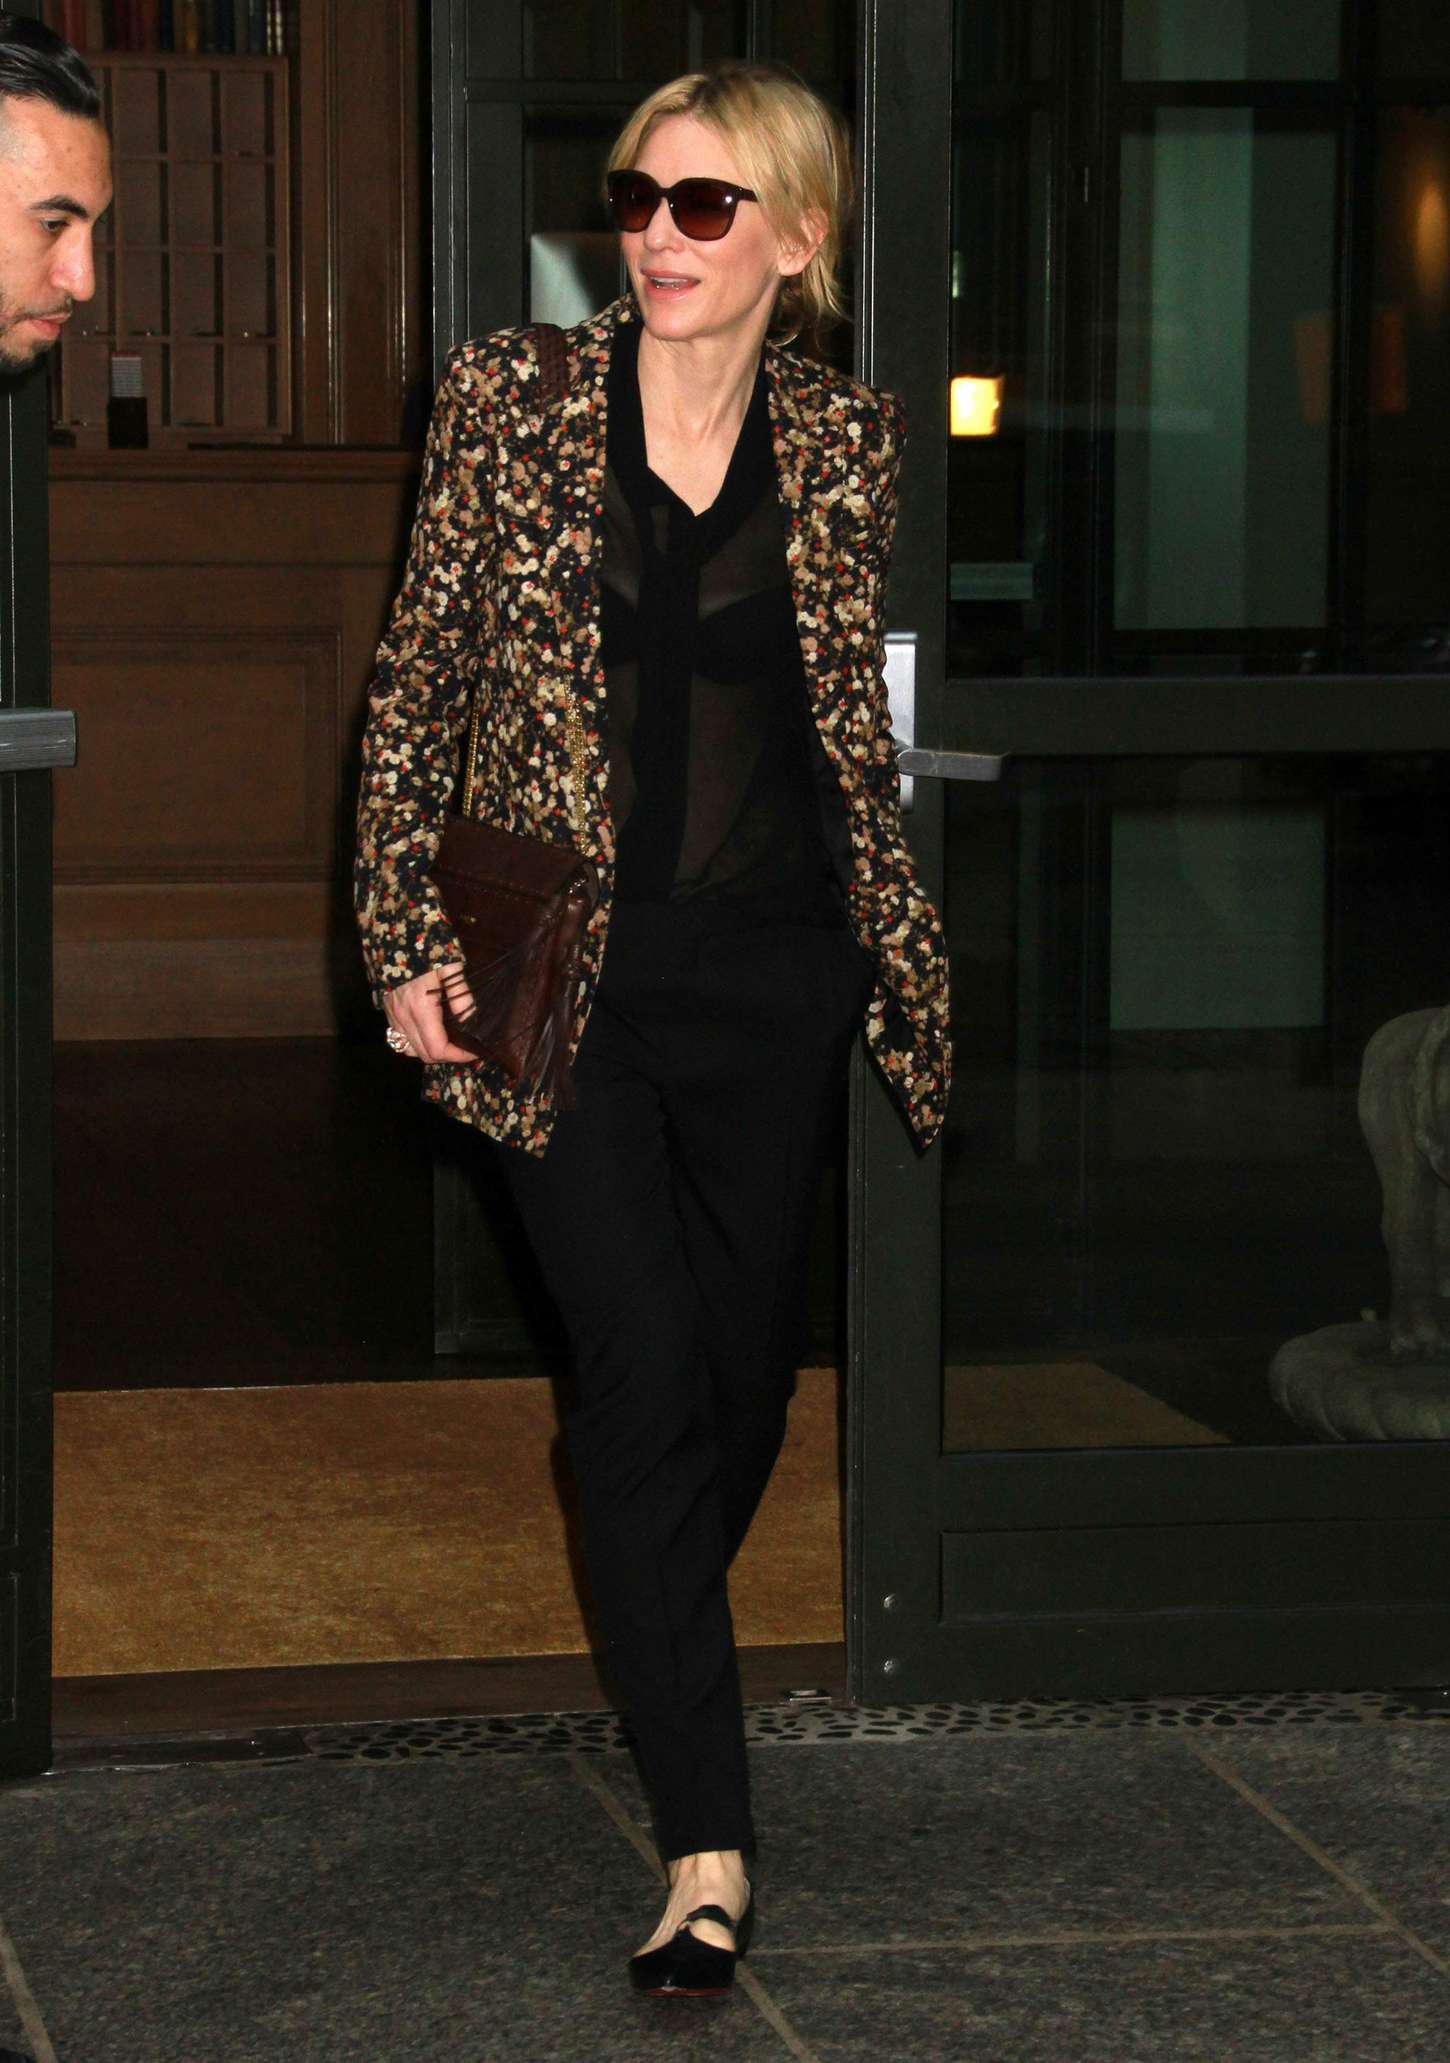 Cate Blanchett 2015 : Cate Blanchett out in New York City -01